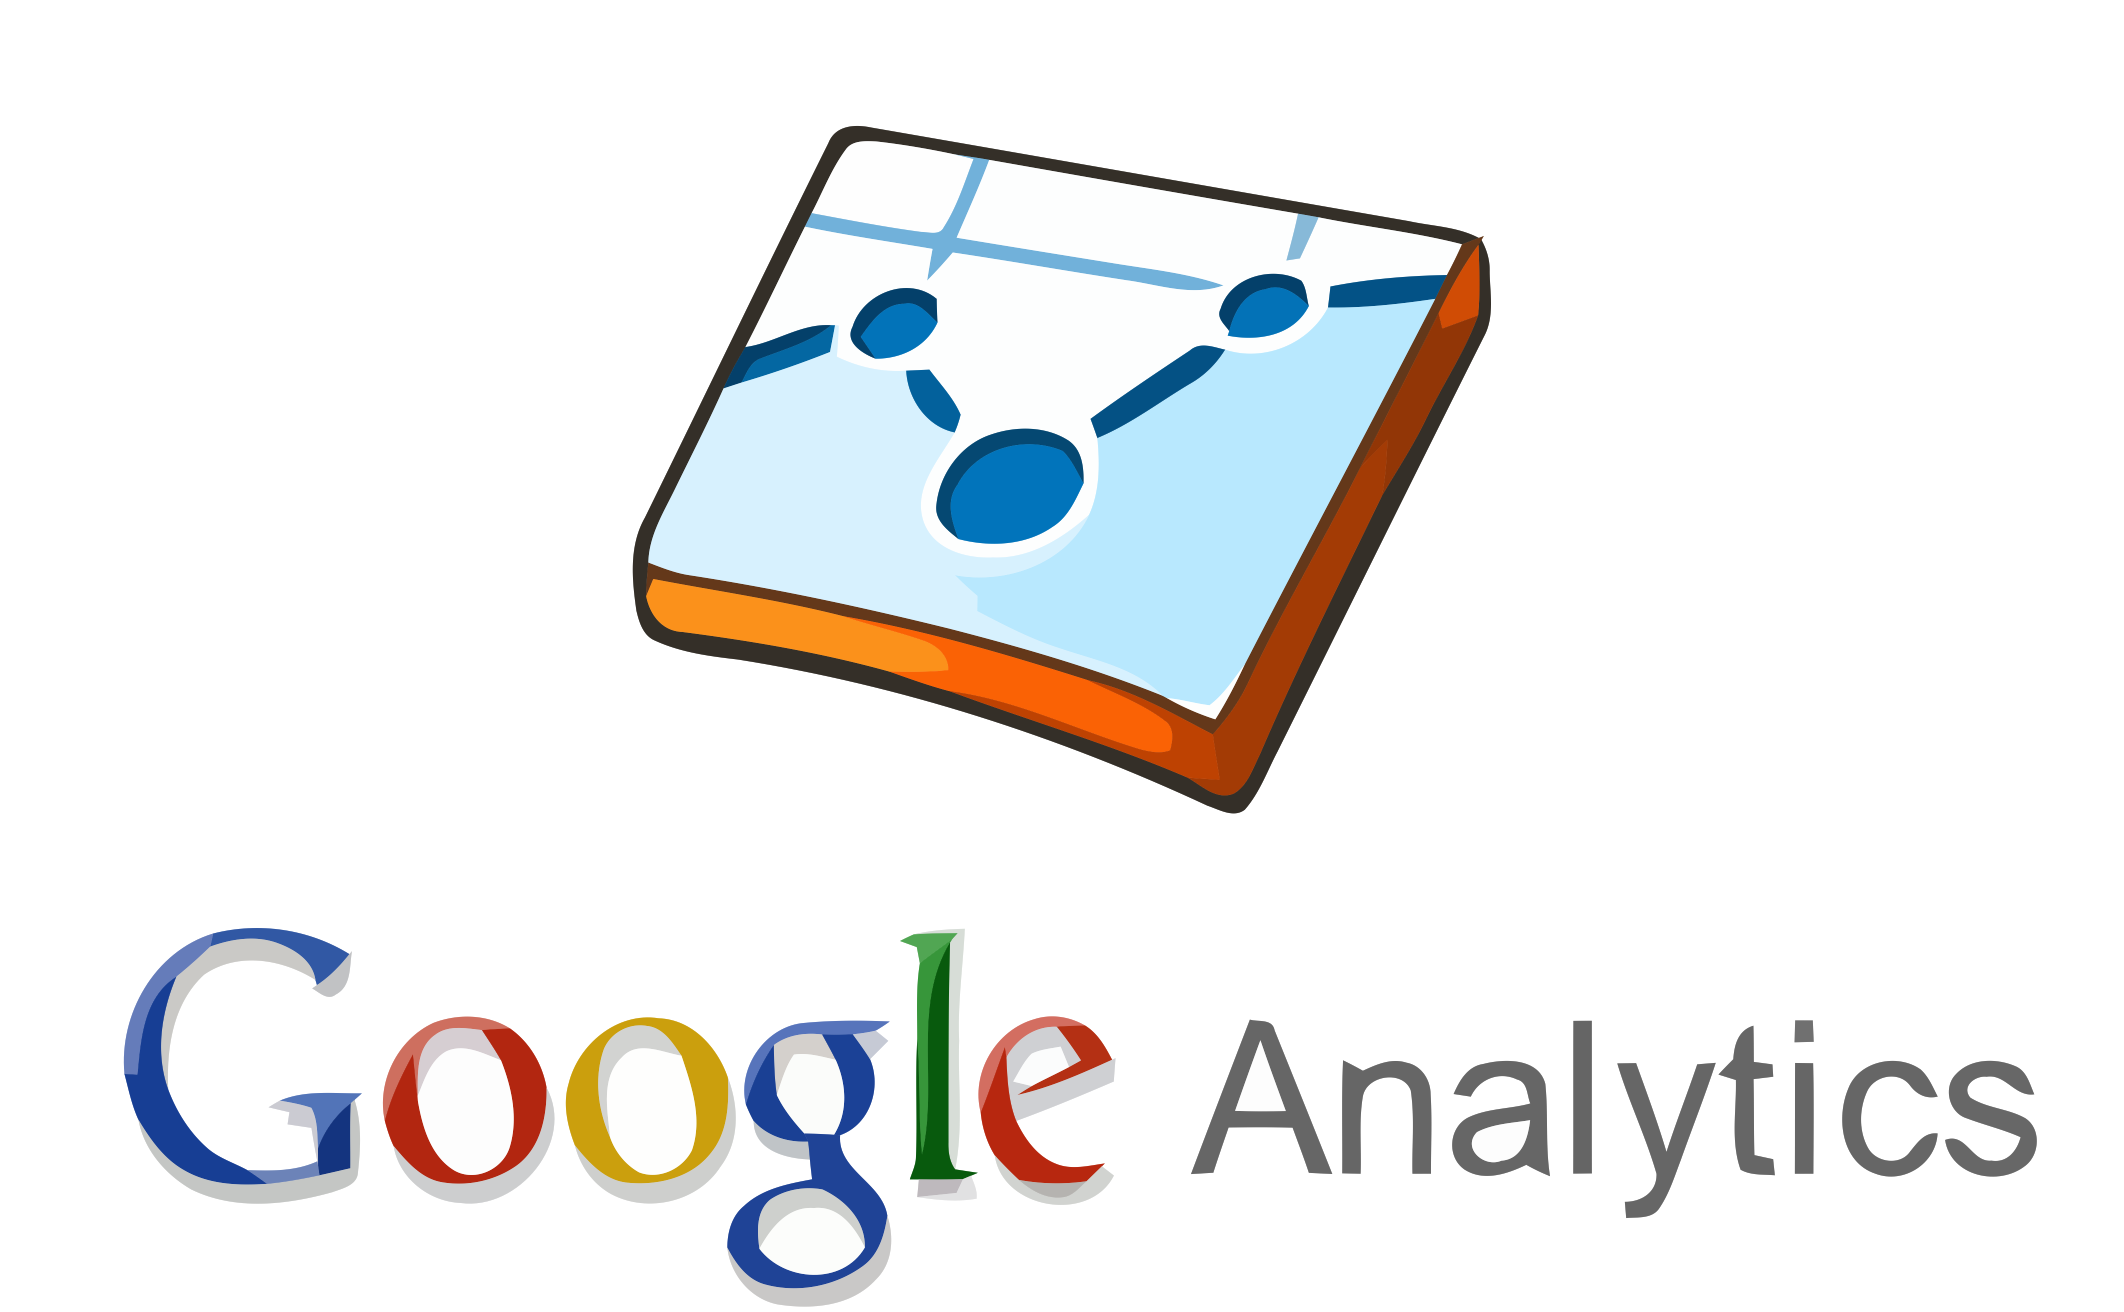 Google Tag Manager: Cross-domain linking with Universal Analytics